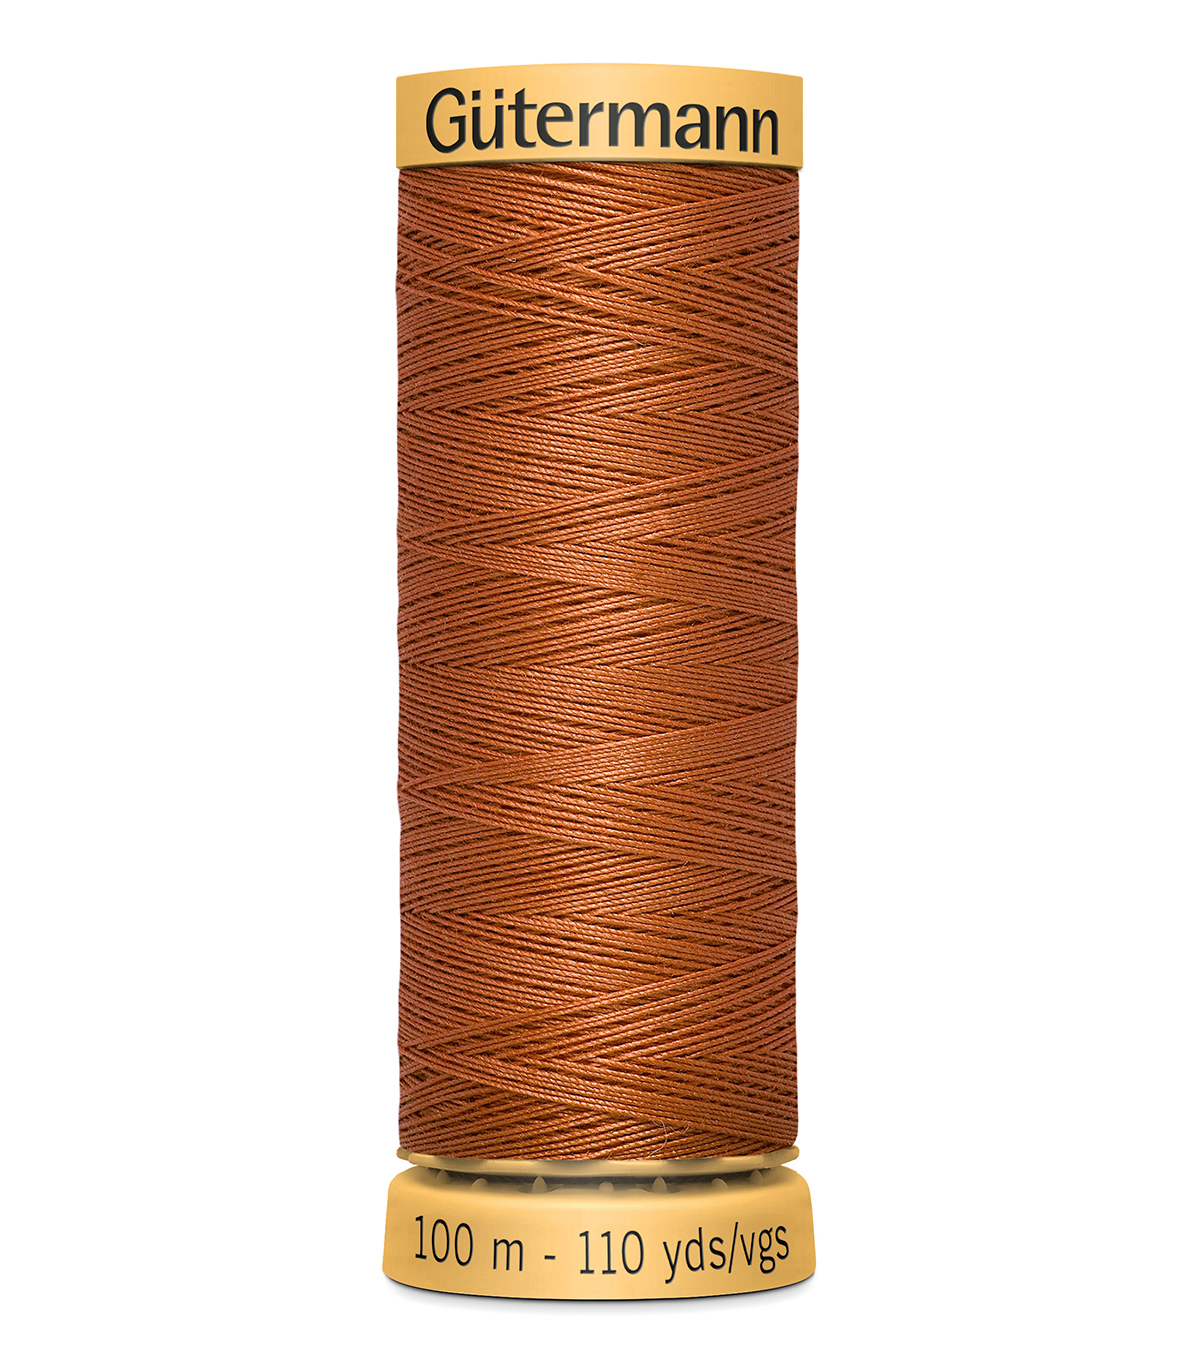 Gutermann Sew All Polyester Thread 110 Yards-Oranges & Yellows , Coral Copp